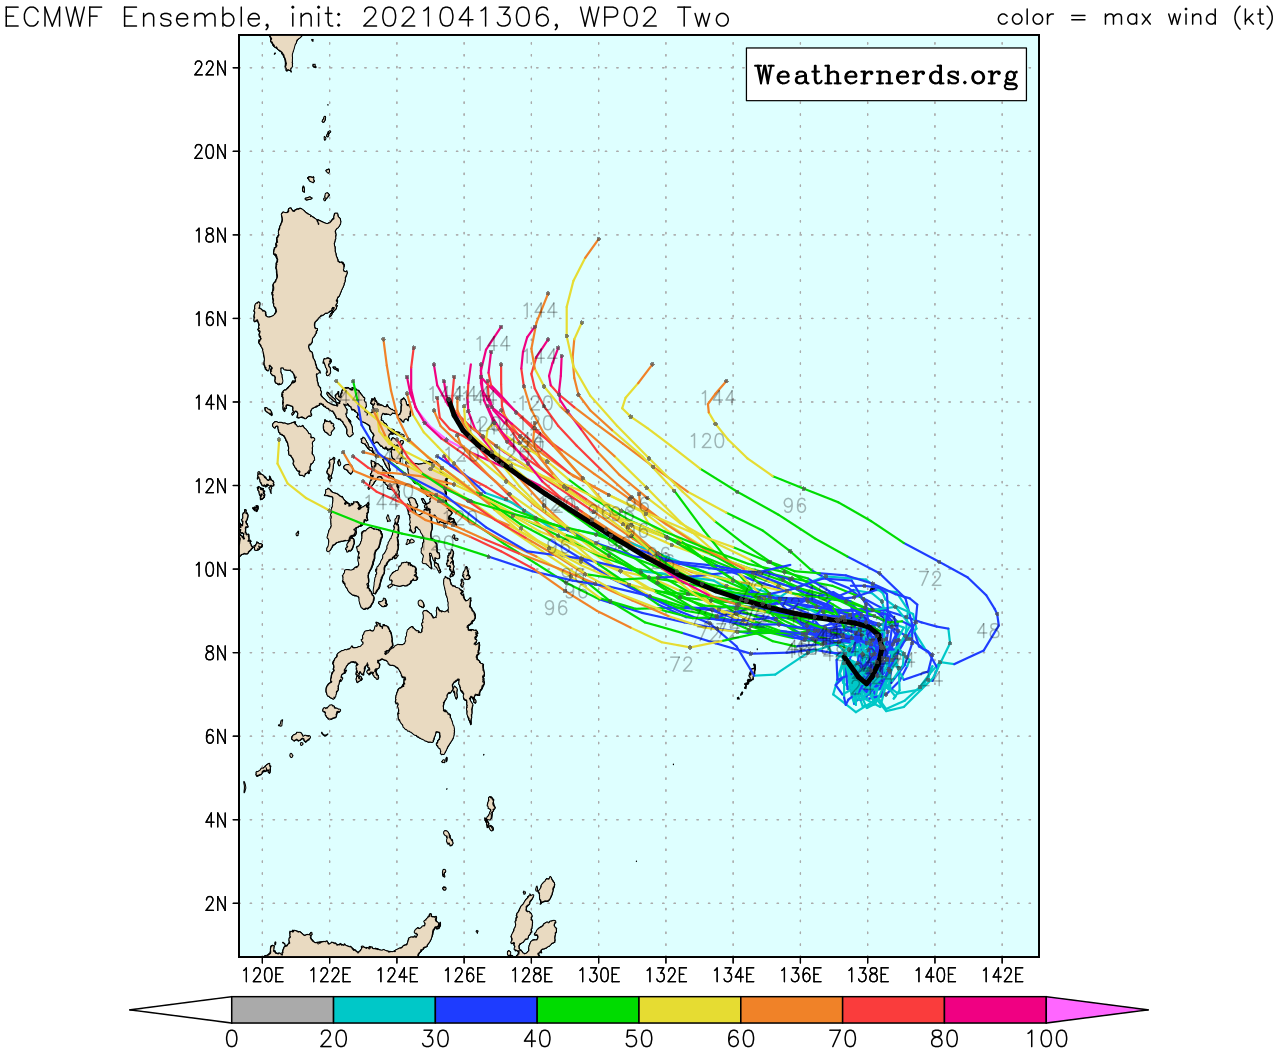 TD 02W. GUIDANCE: ECMWF ENSEMBLE. NUMERICAL MODELS ARE IN OVERALL GOOD AGREEMENT WITH A GRADUAL SPREAD TO 290KM BY 72H WITH  ECMWF ON THE LEFT- AND AVNO ON THE RIGHT-MARGIN OF THE ENVELOPE.  HOWEVER, GIVEN THE UNCERTAINTY IN THE INITIAL STORM MOTION SECONDARY  TO THE COMPETING STEERING MECHANISMS, THERE IS LOW CONFIDENCE IN  THIS PORTION OF THE JTWC TRACK FORECAST.NUMERICAL MODELS SPREAD OUT EVEN MORE TO OVER 890KM BY 120H, LENDING LOW CONFIDENCE TO THE  EXTENDED PORTION OF THE JTWC TRACK FORECAST.//